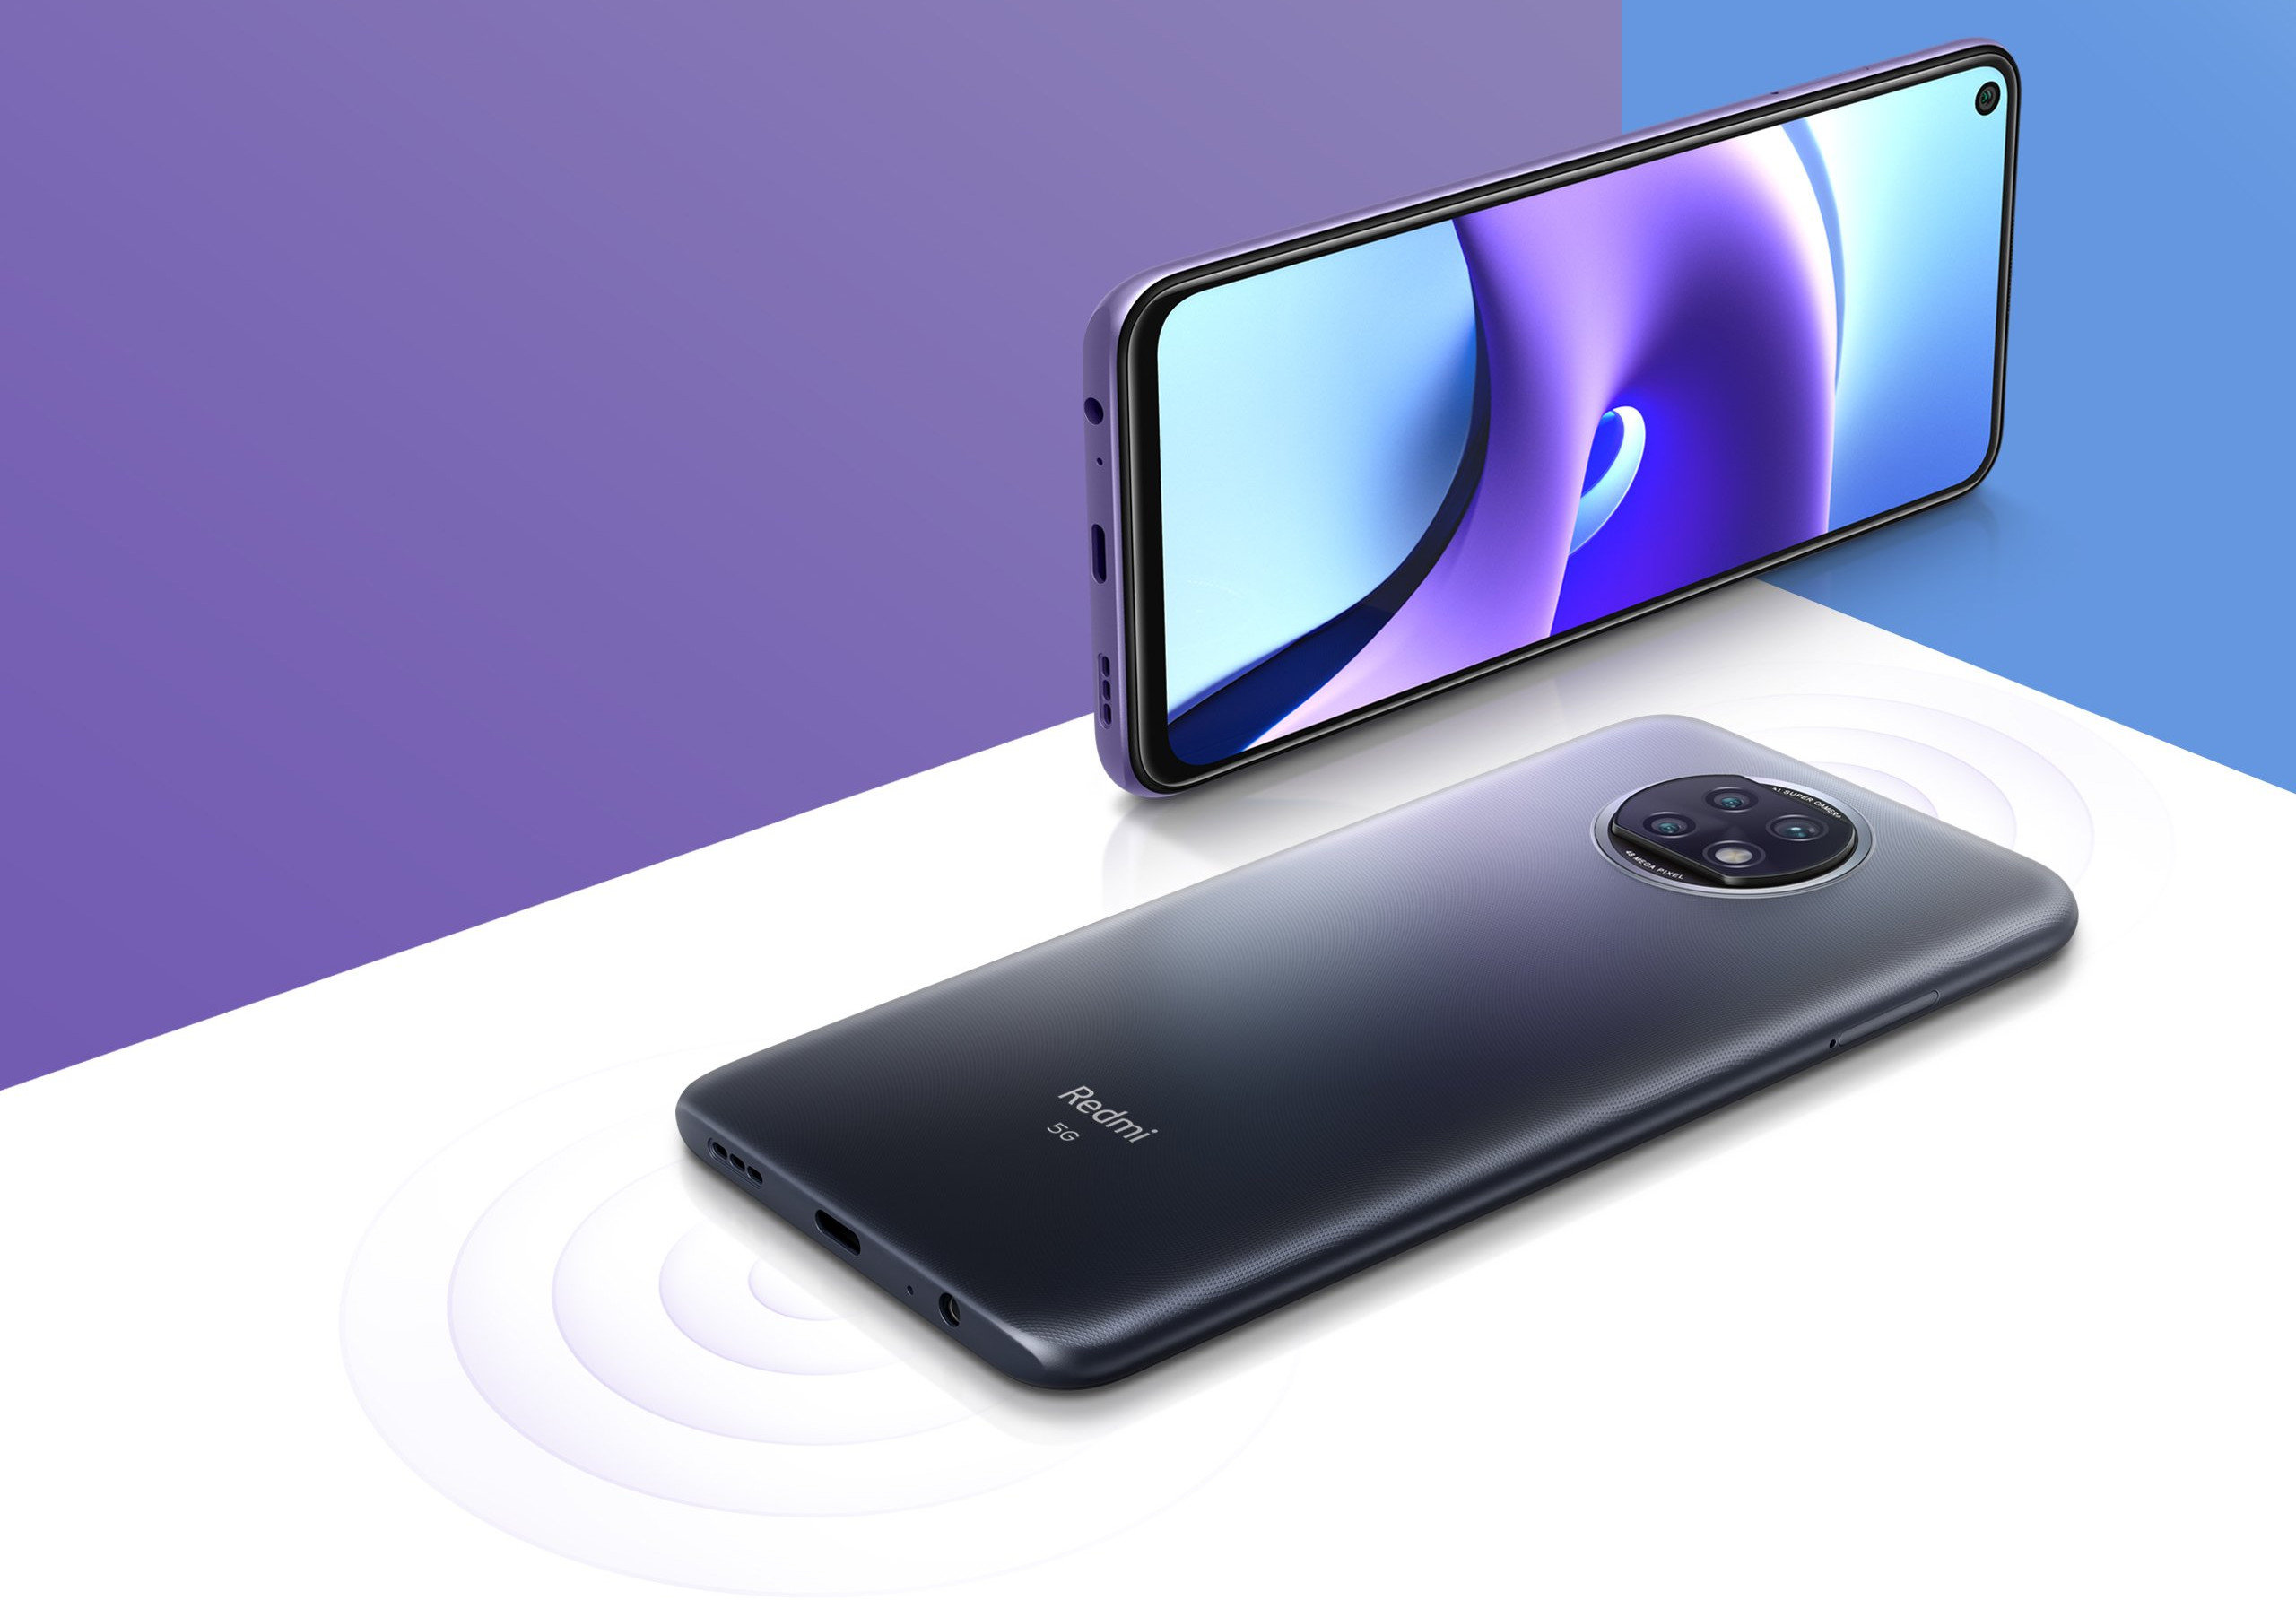 Redmi Note 9T has a 5G modem, but there were some compromises